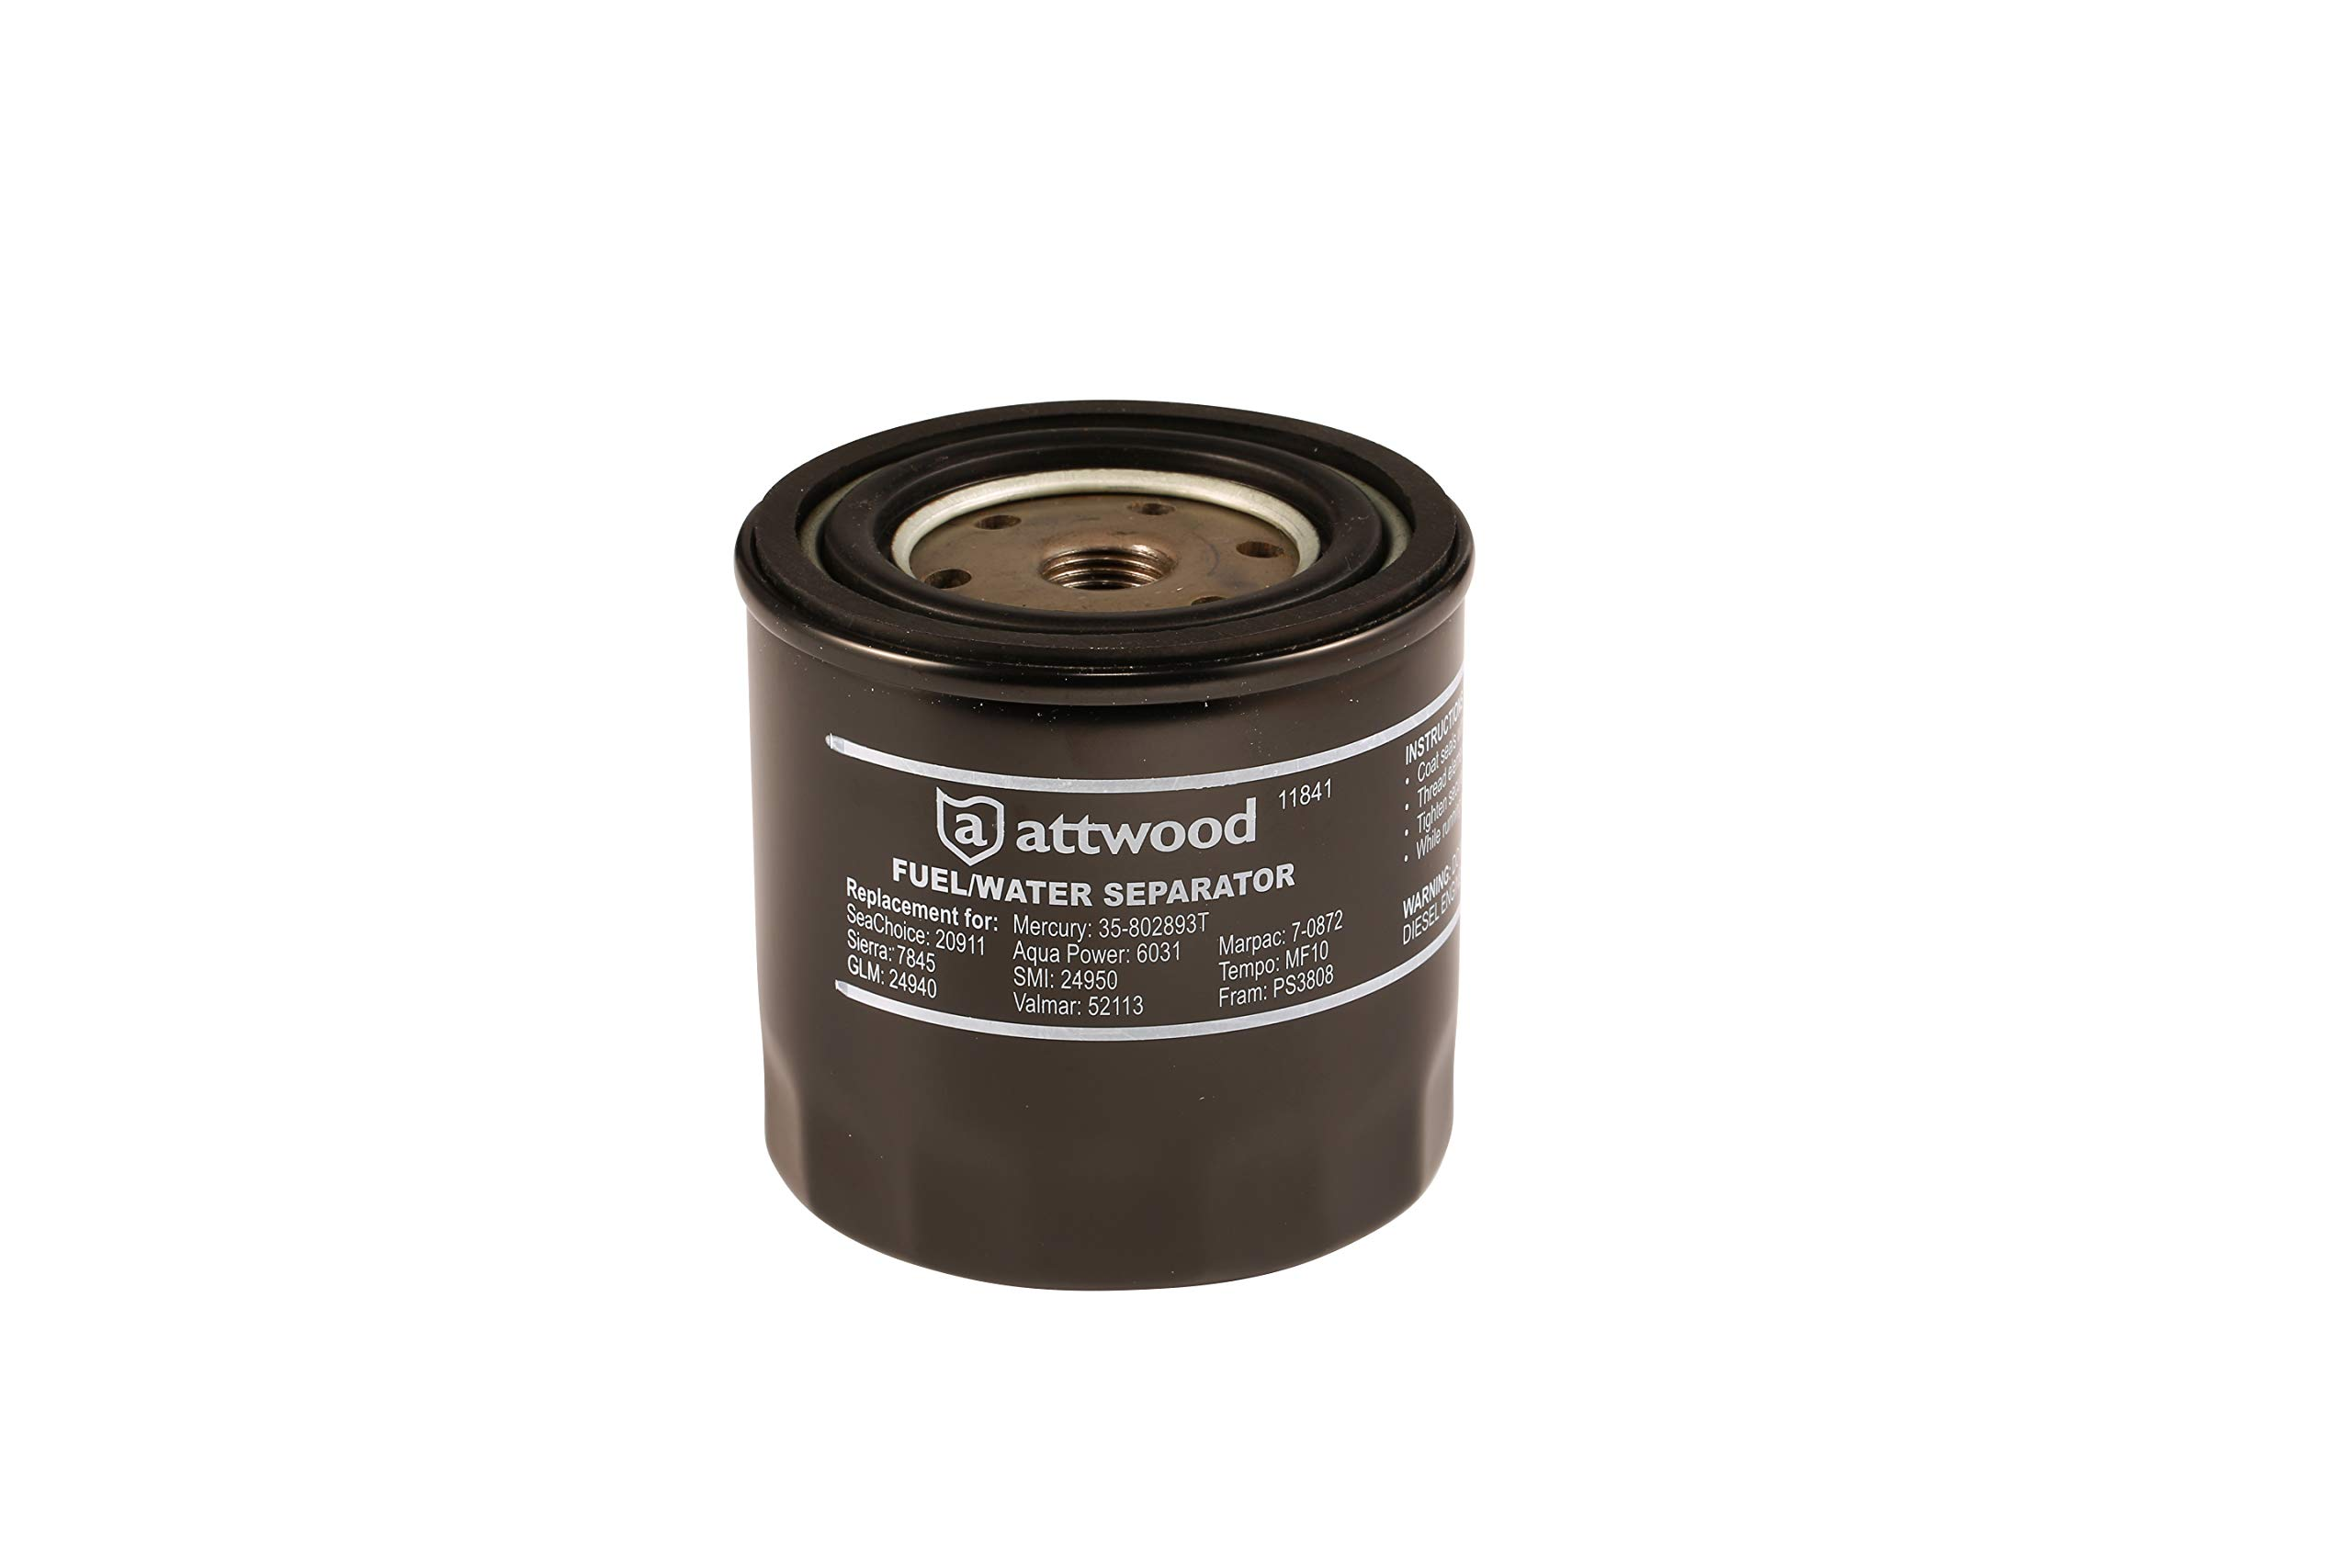 Attwood 11841-4 Universal 10-Micron Fuel/Water Separator Filter with Double Gasket, Black